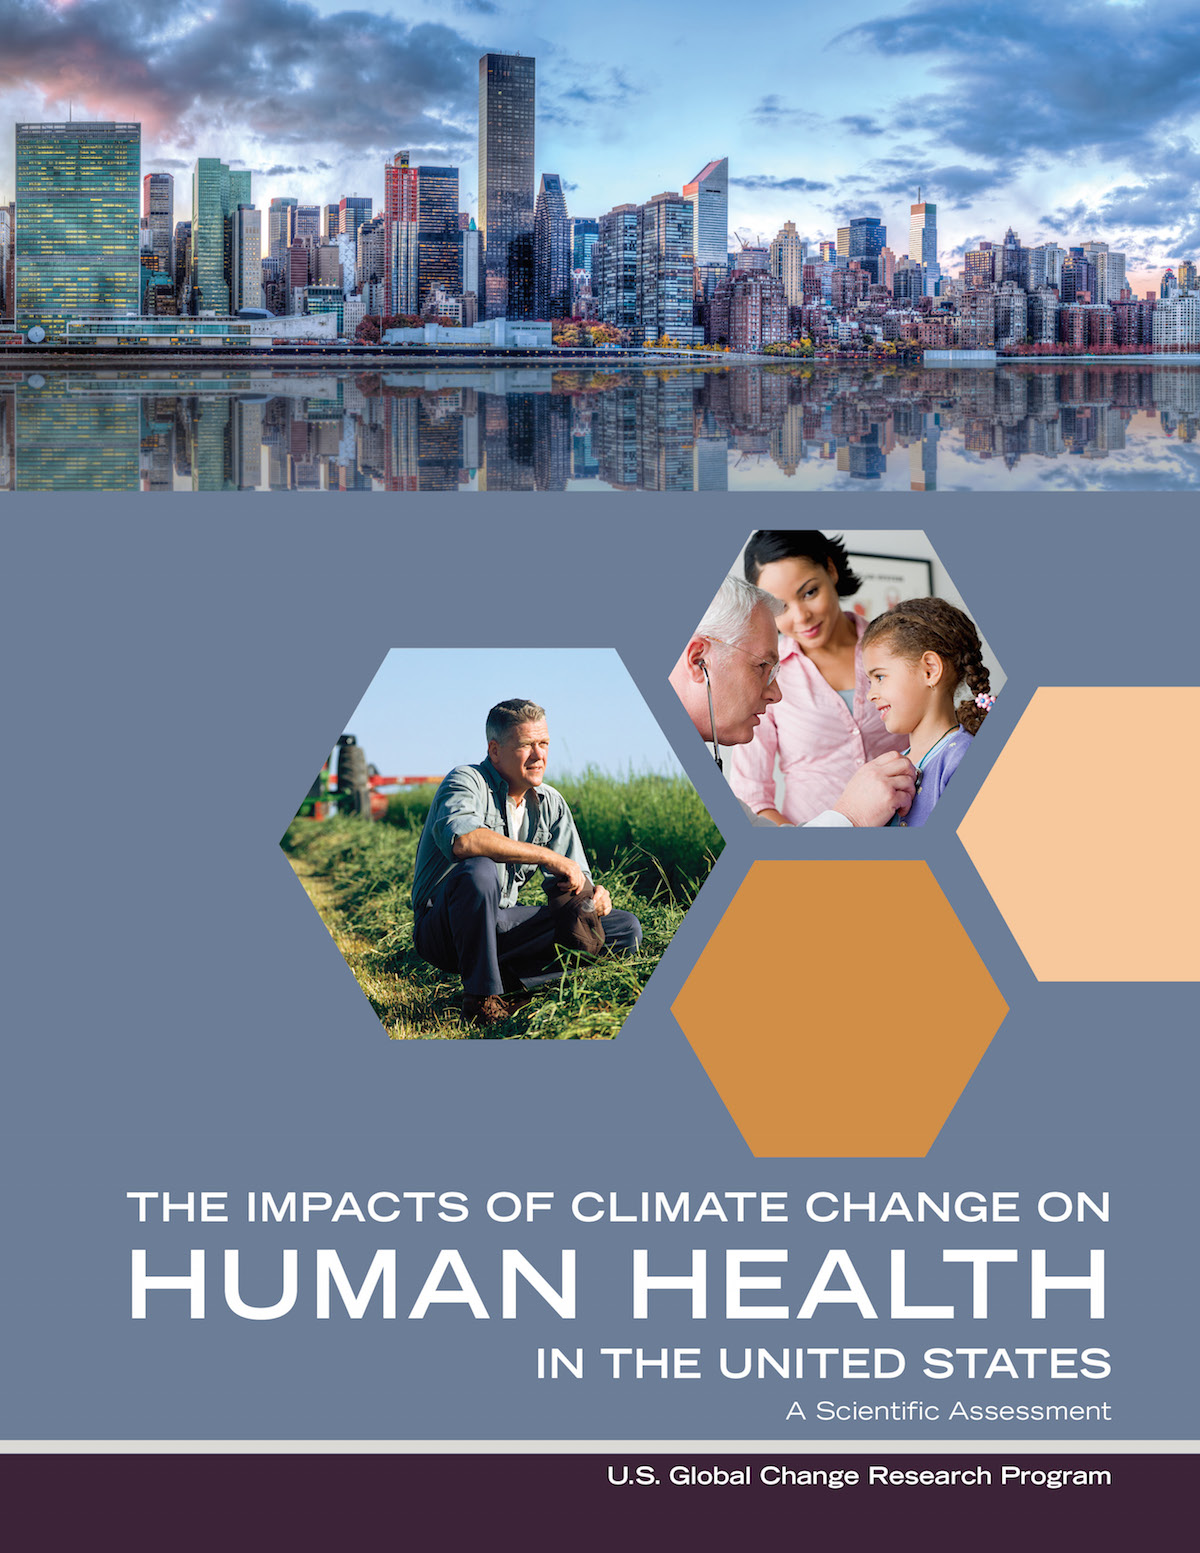 Flyer about the impacts of climate change on human health int he United States